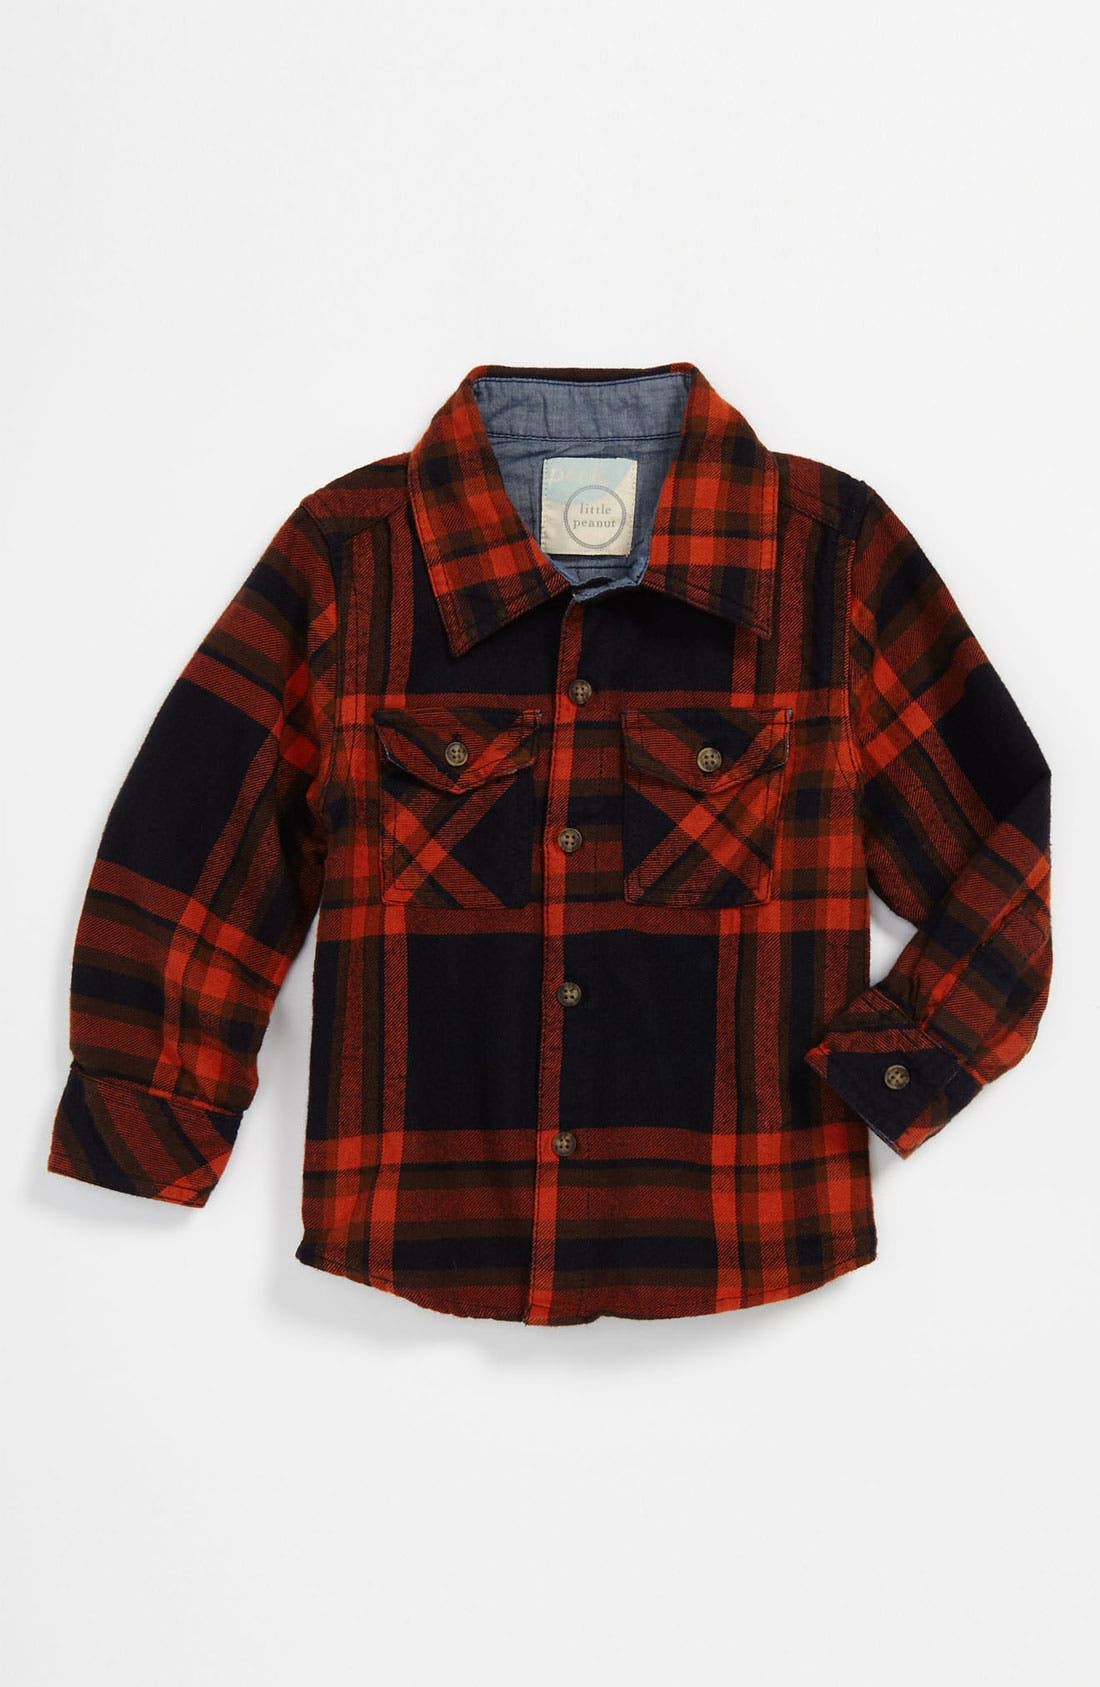 Alternate Image 1 Selected - Peek 'Big Horn' Plaid Shirt (Infant)